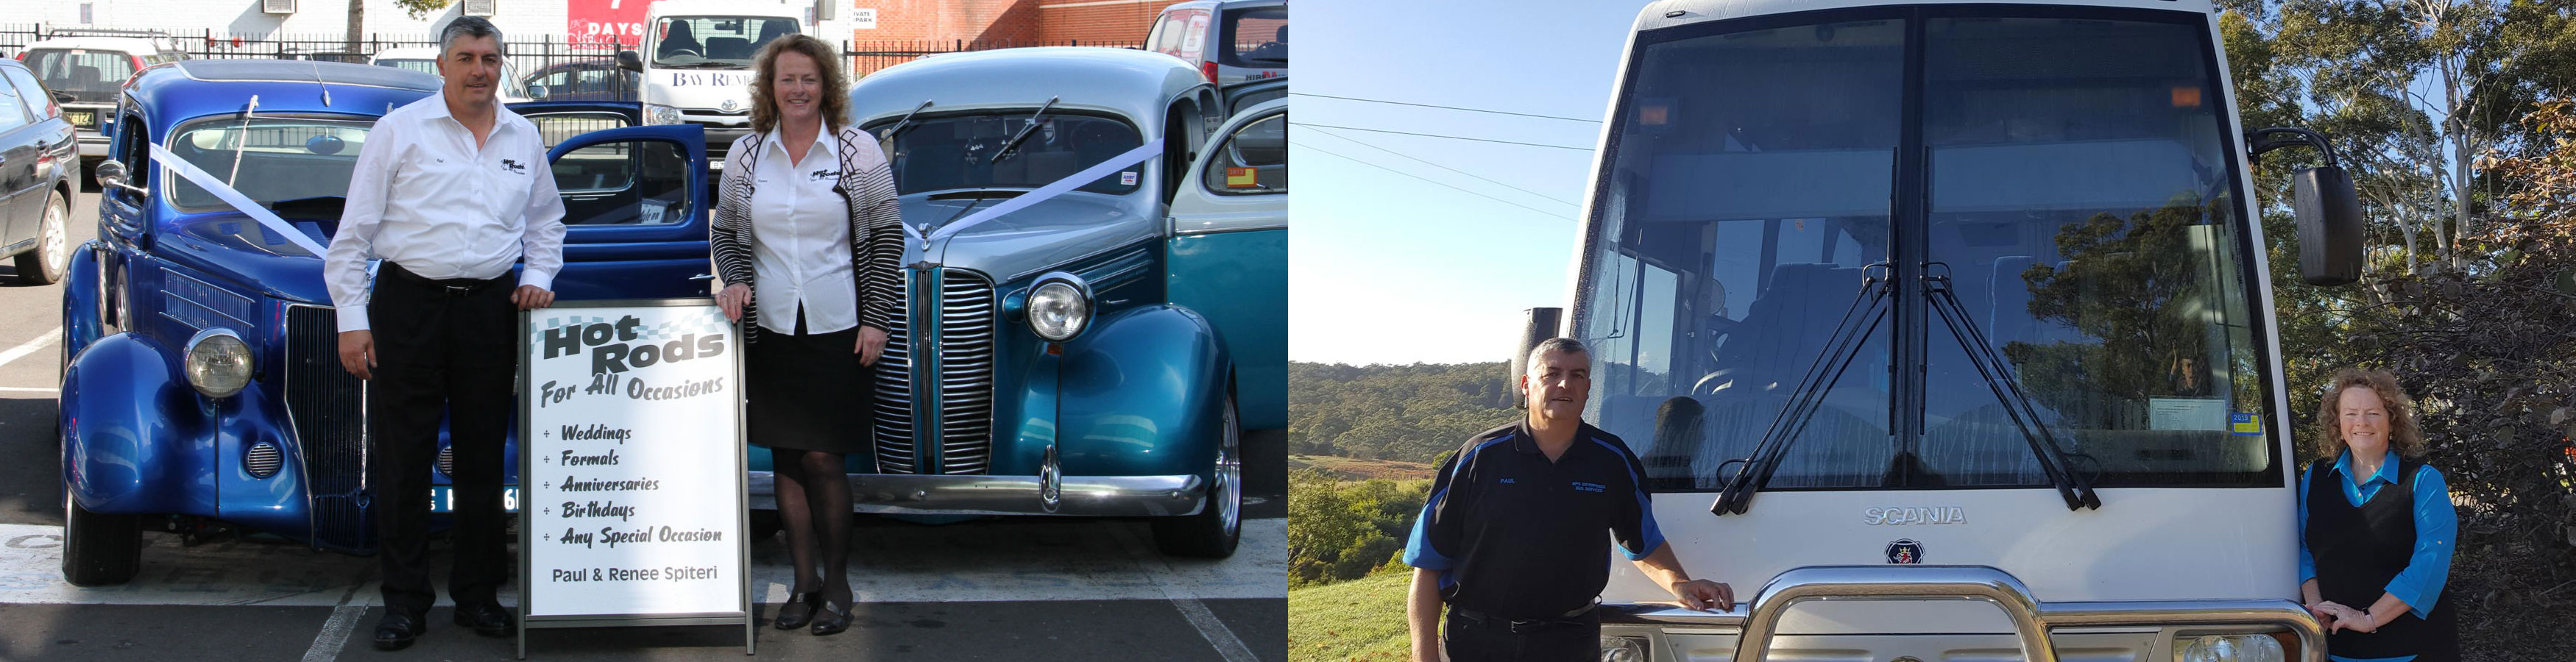 Renee and Paul Spiteri of Hot Rods For All Occasions and Bulahdelah Buses